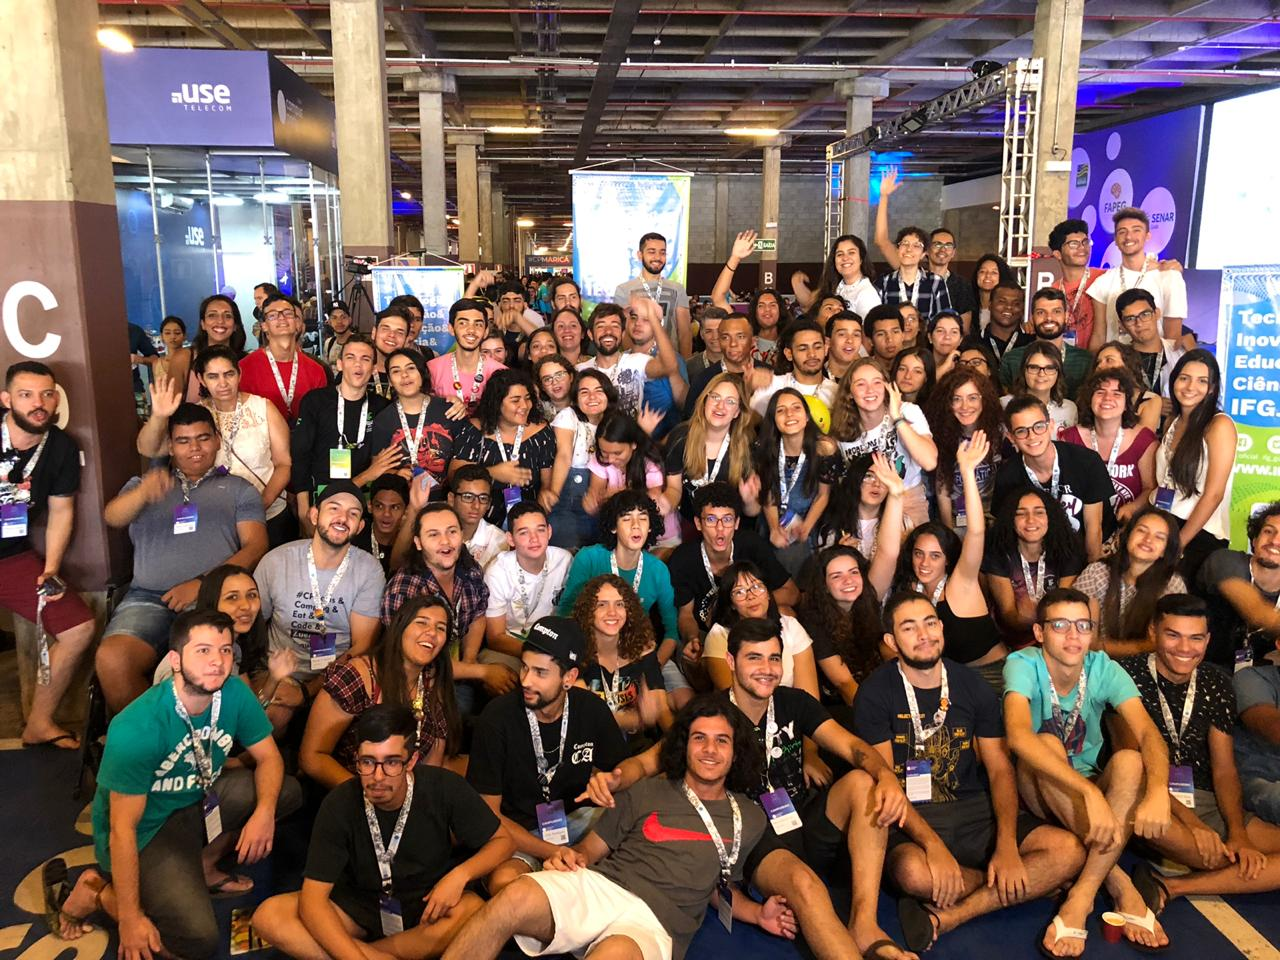 Alunos do IFG participam da 1ª Campus Party Goiás